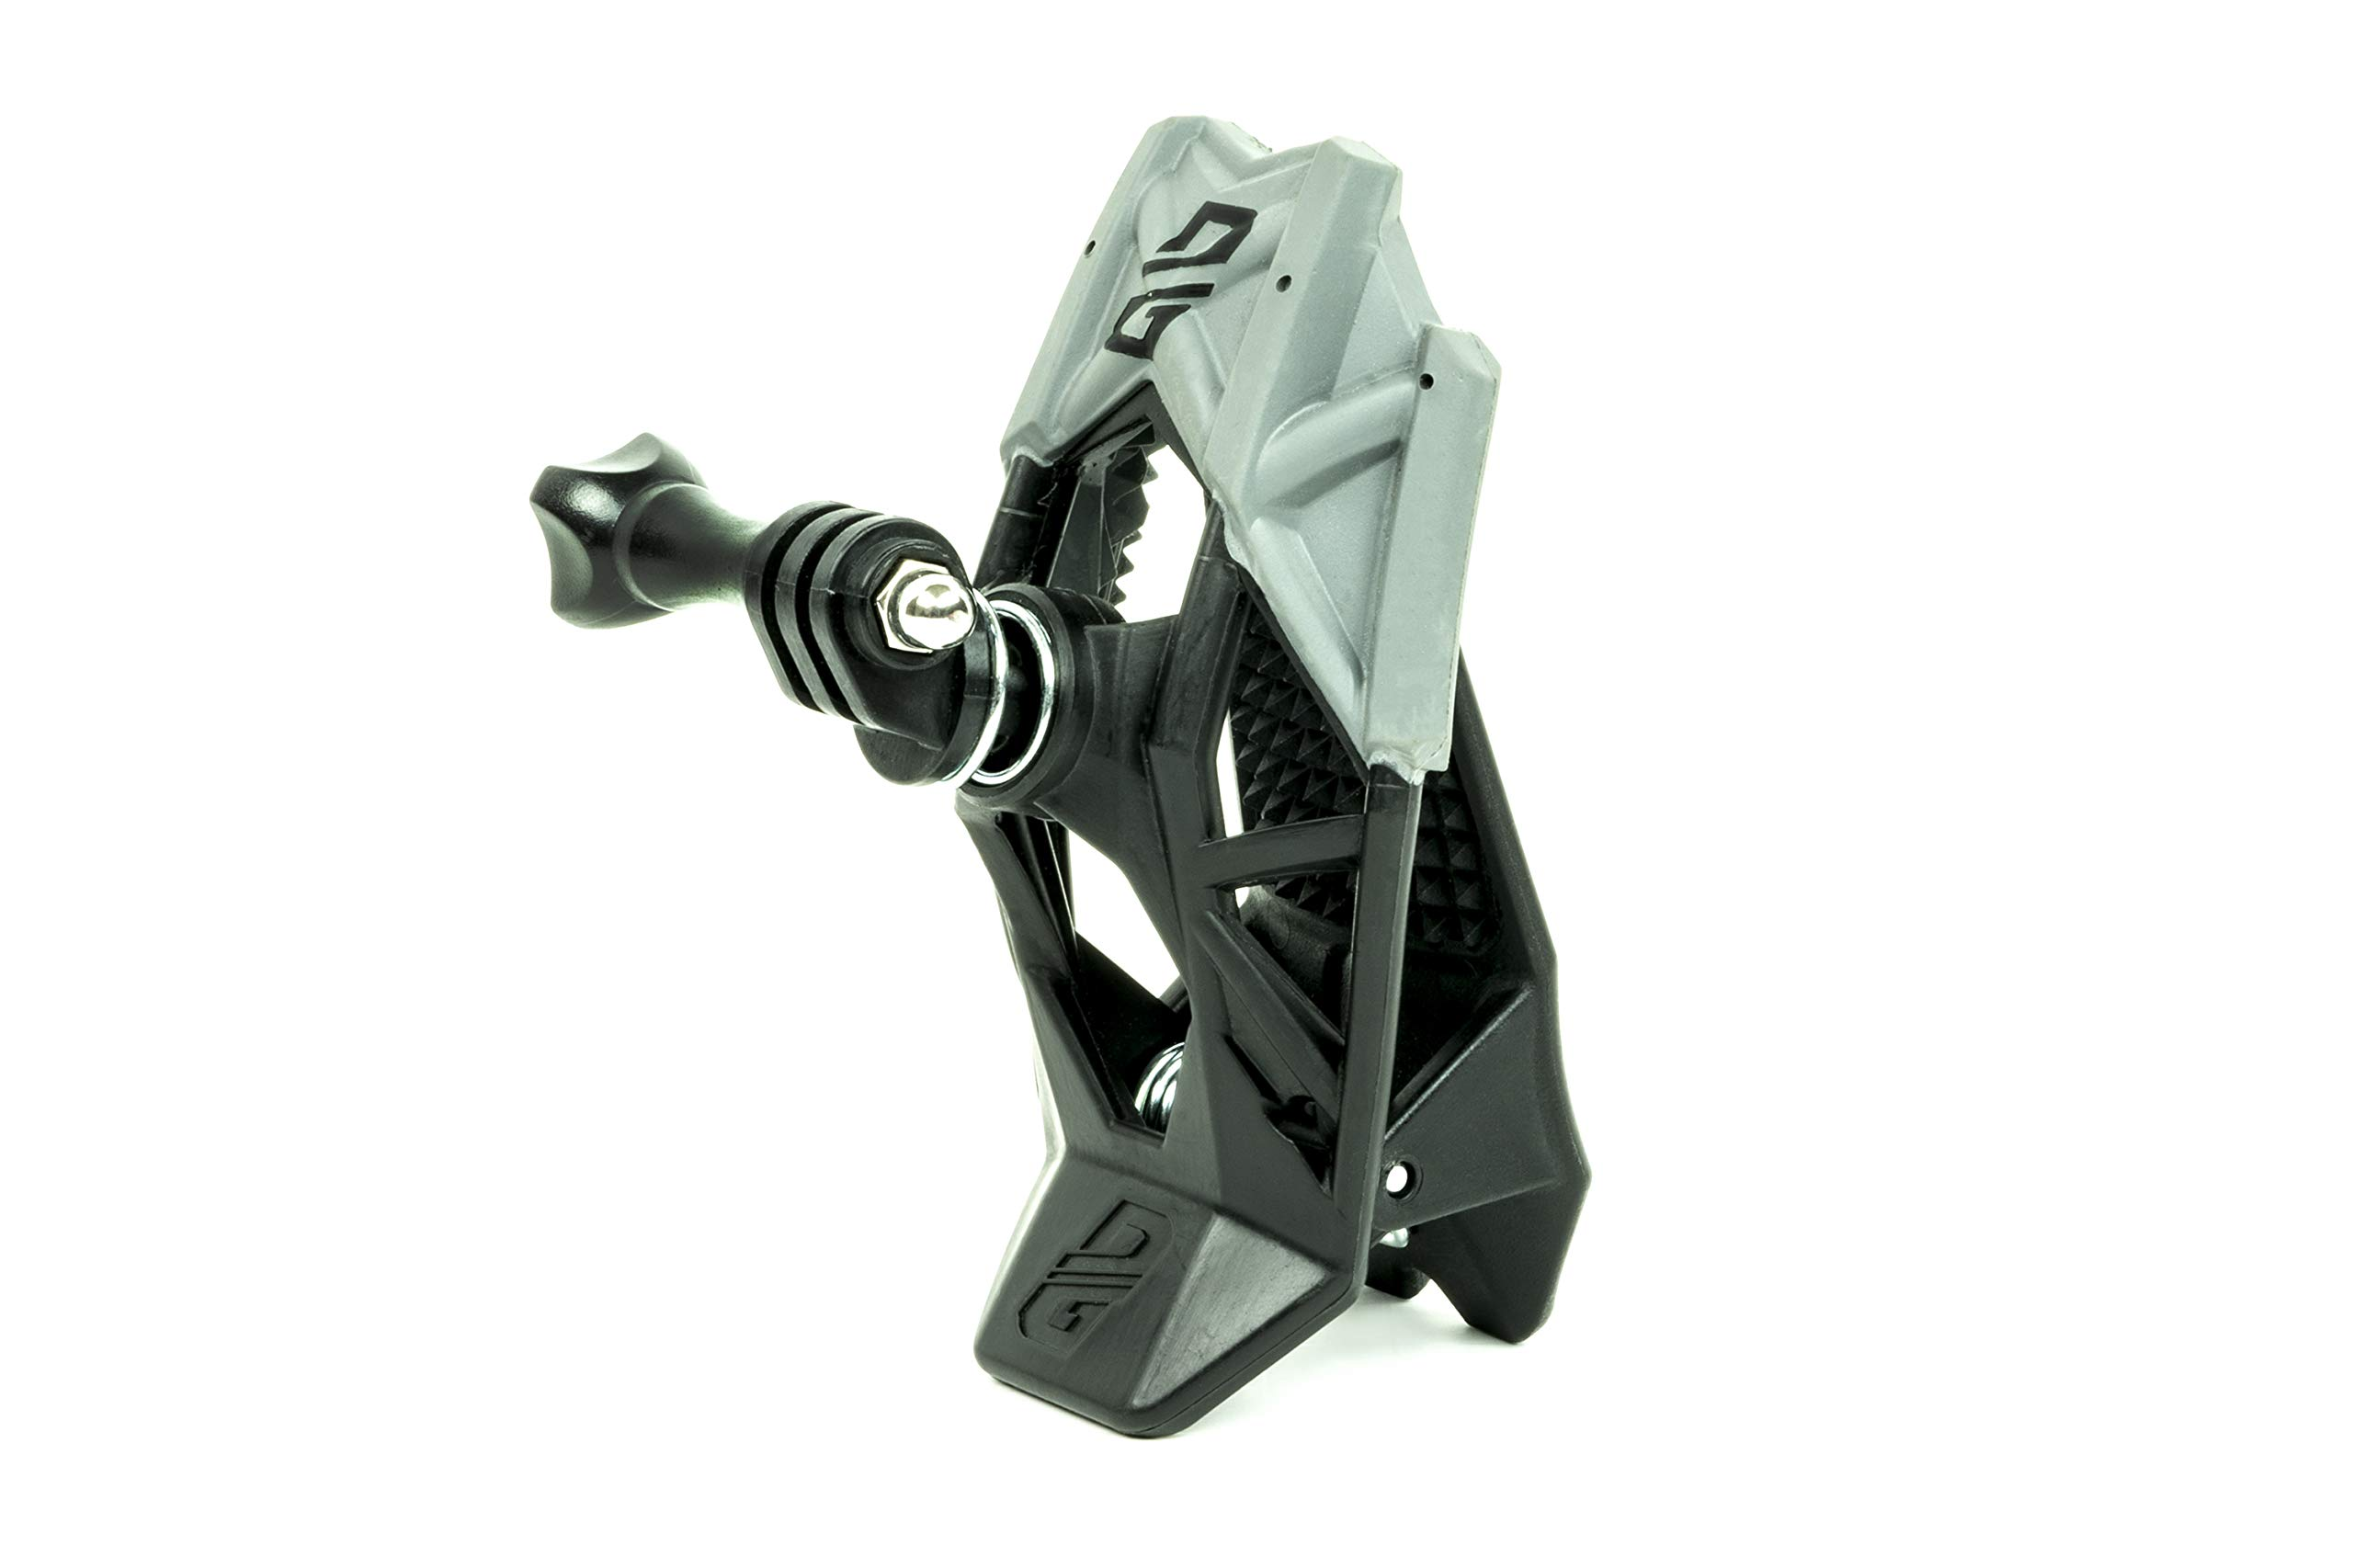 Dango Design Gripper Mount - Universal Clamp Mount for Action Cameras, Use as a Mount on Motorcycle, Powersports Helmets & More - Stealth Black